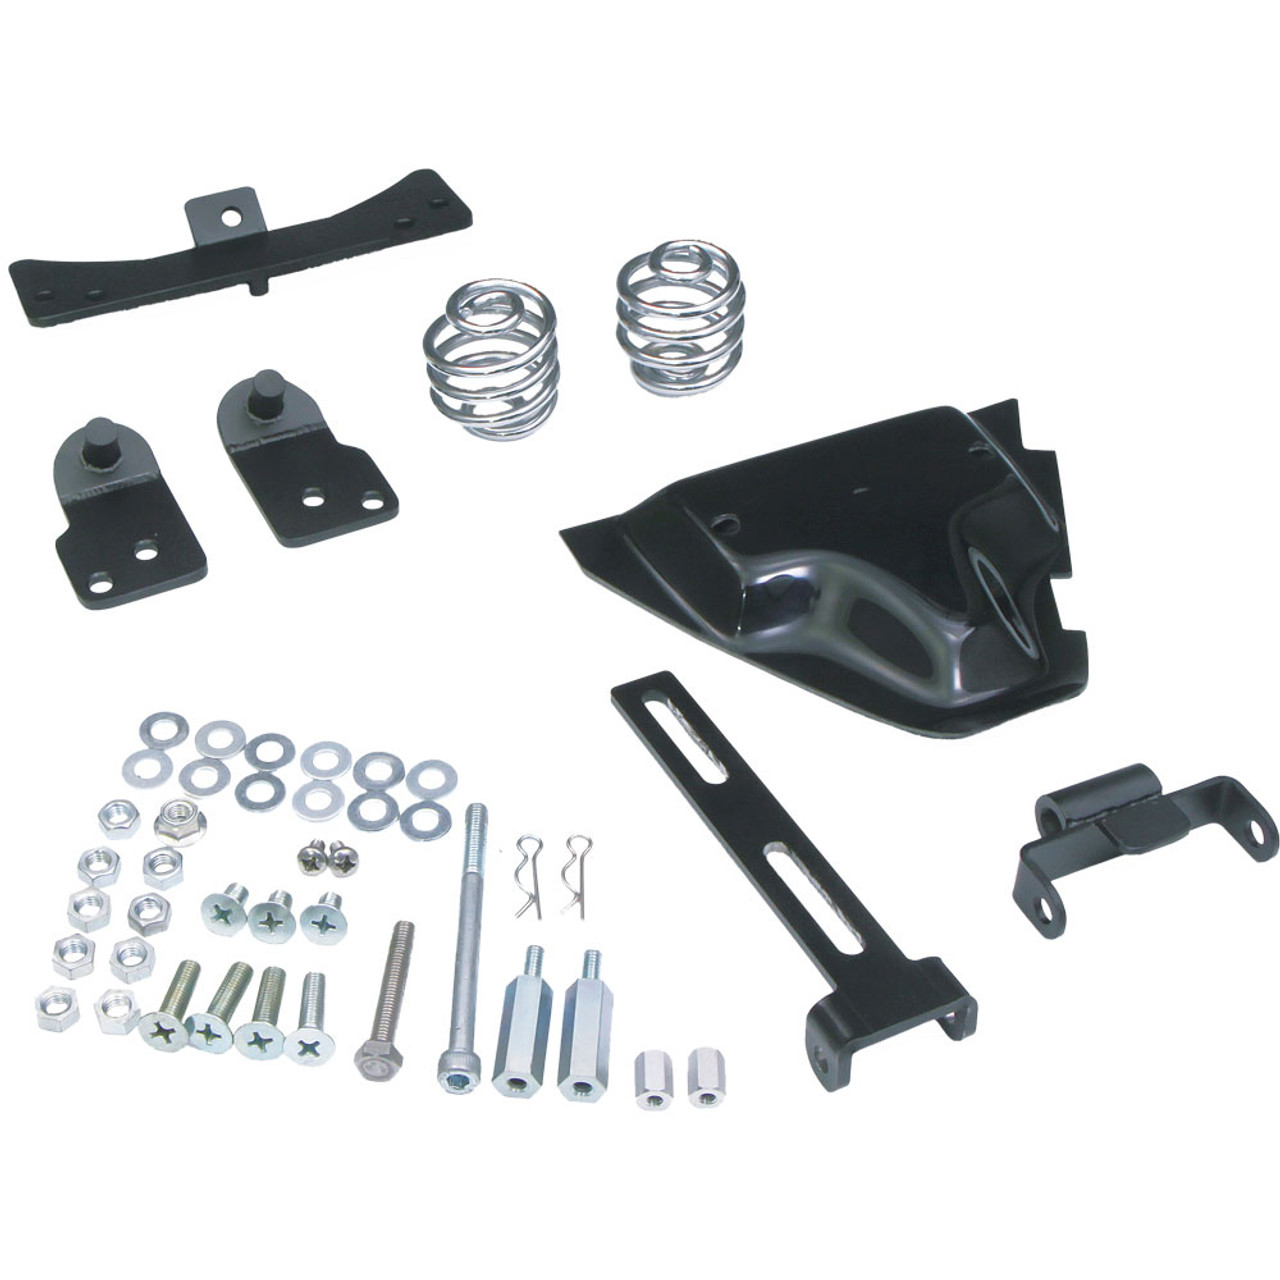 West-Eagle Solo Seat Mounting Kit for Harley Sportster - Get Lowered ...